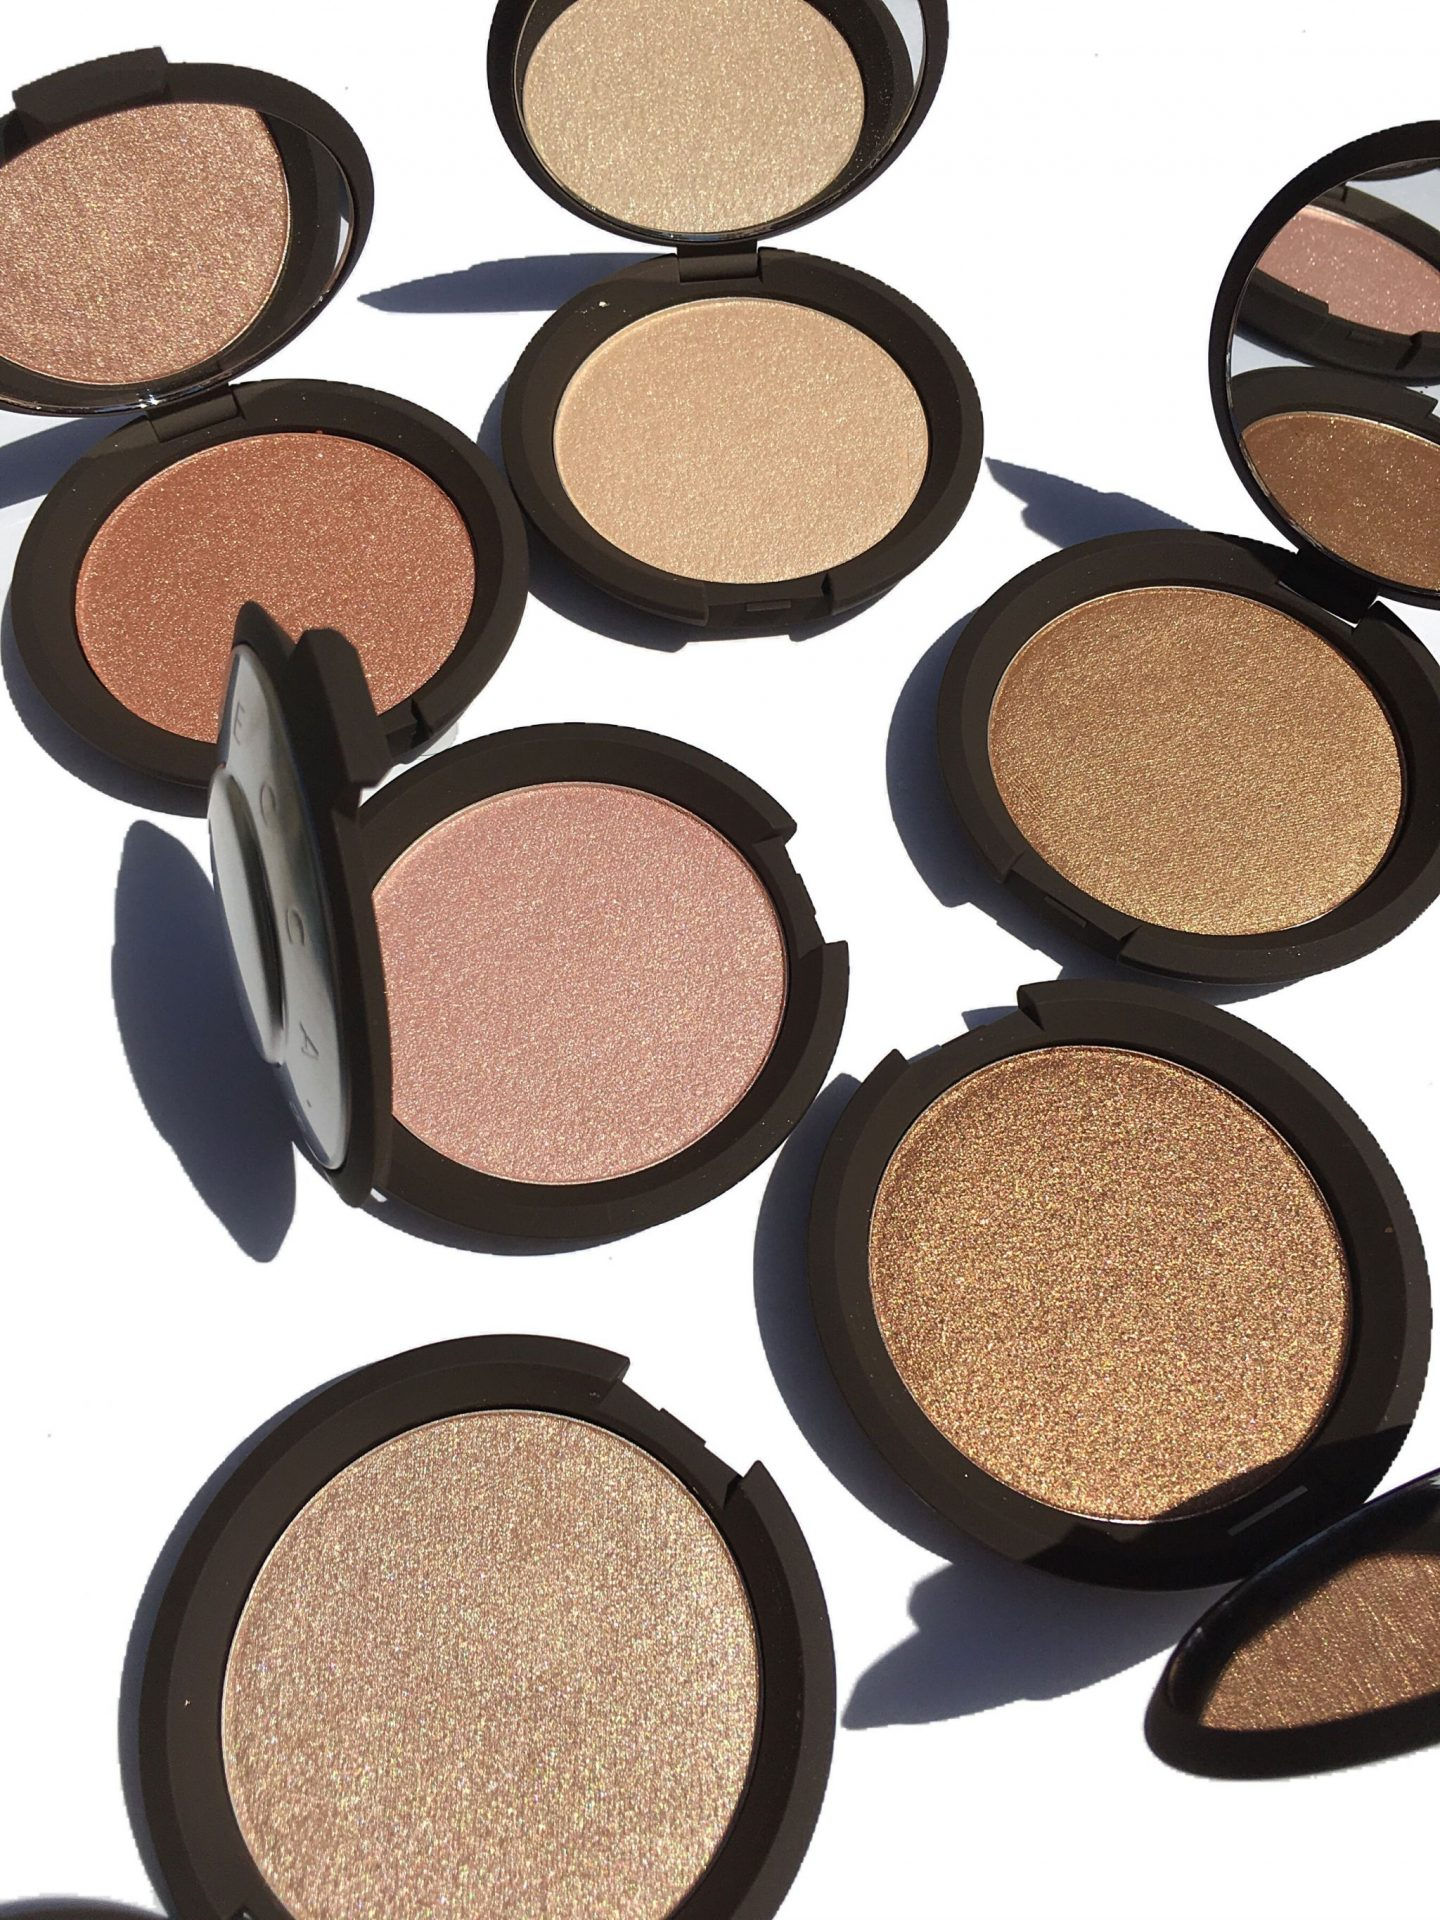 Becca Shimmering Skin Perfector Highlighters swatches www.calibeaute.com